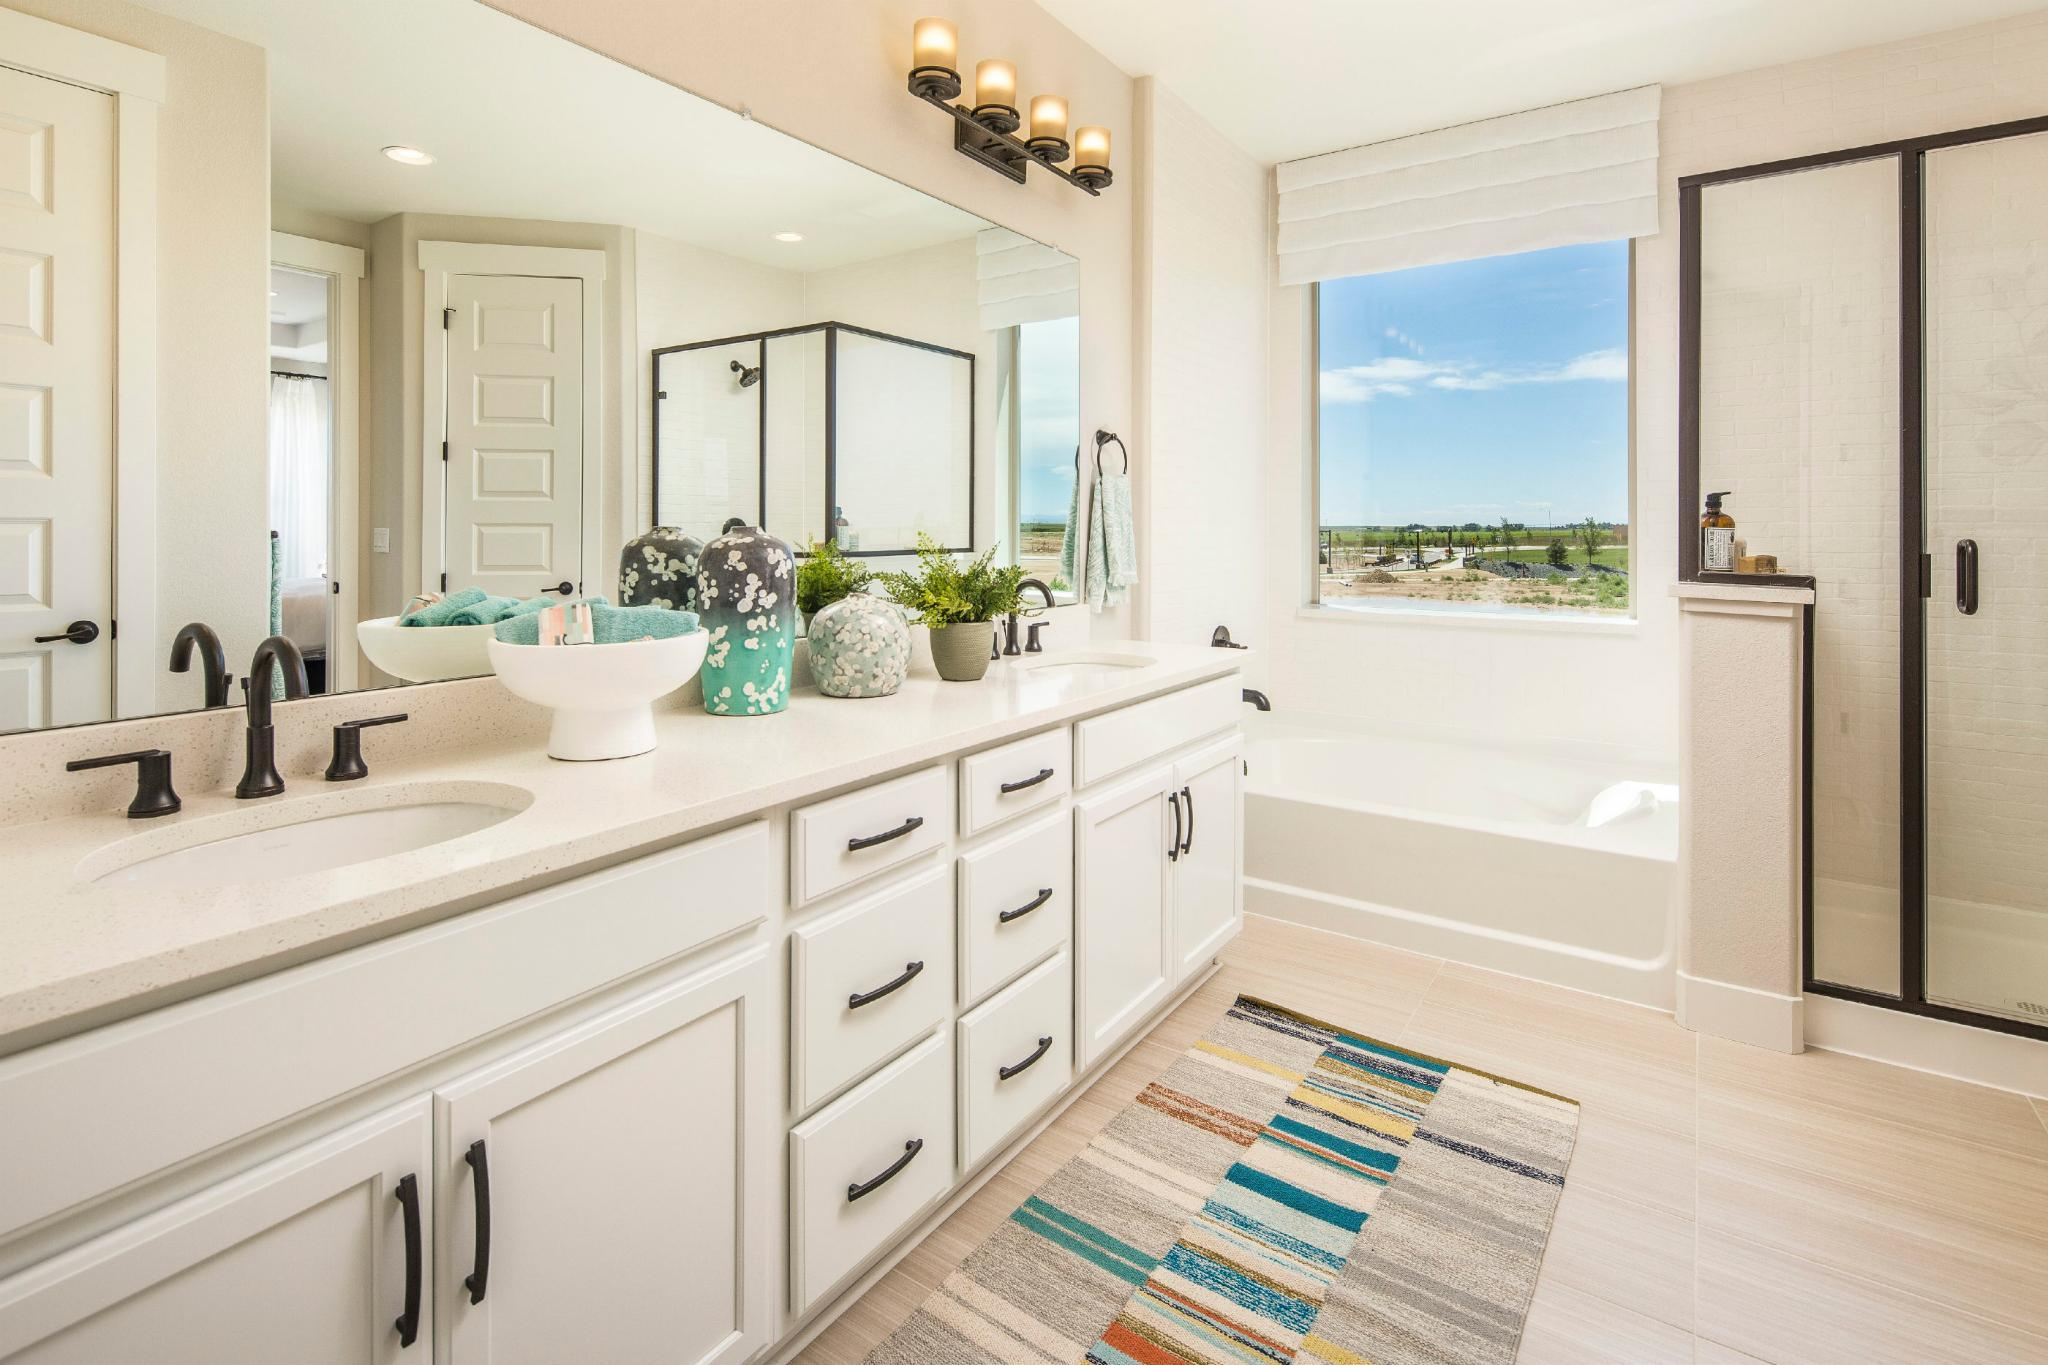 Bathroom featured in the Plan C502 By American Legend Homes in Greeley, CO